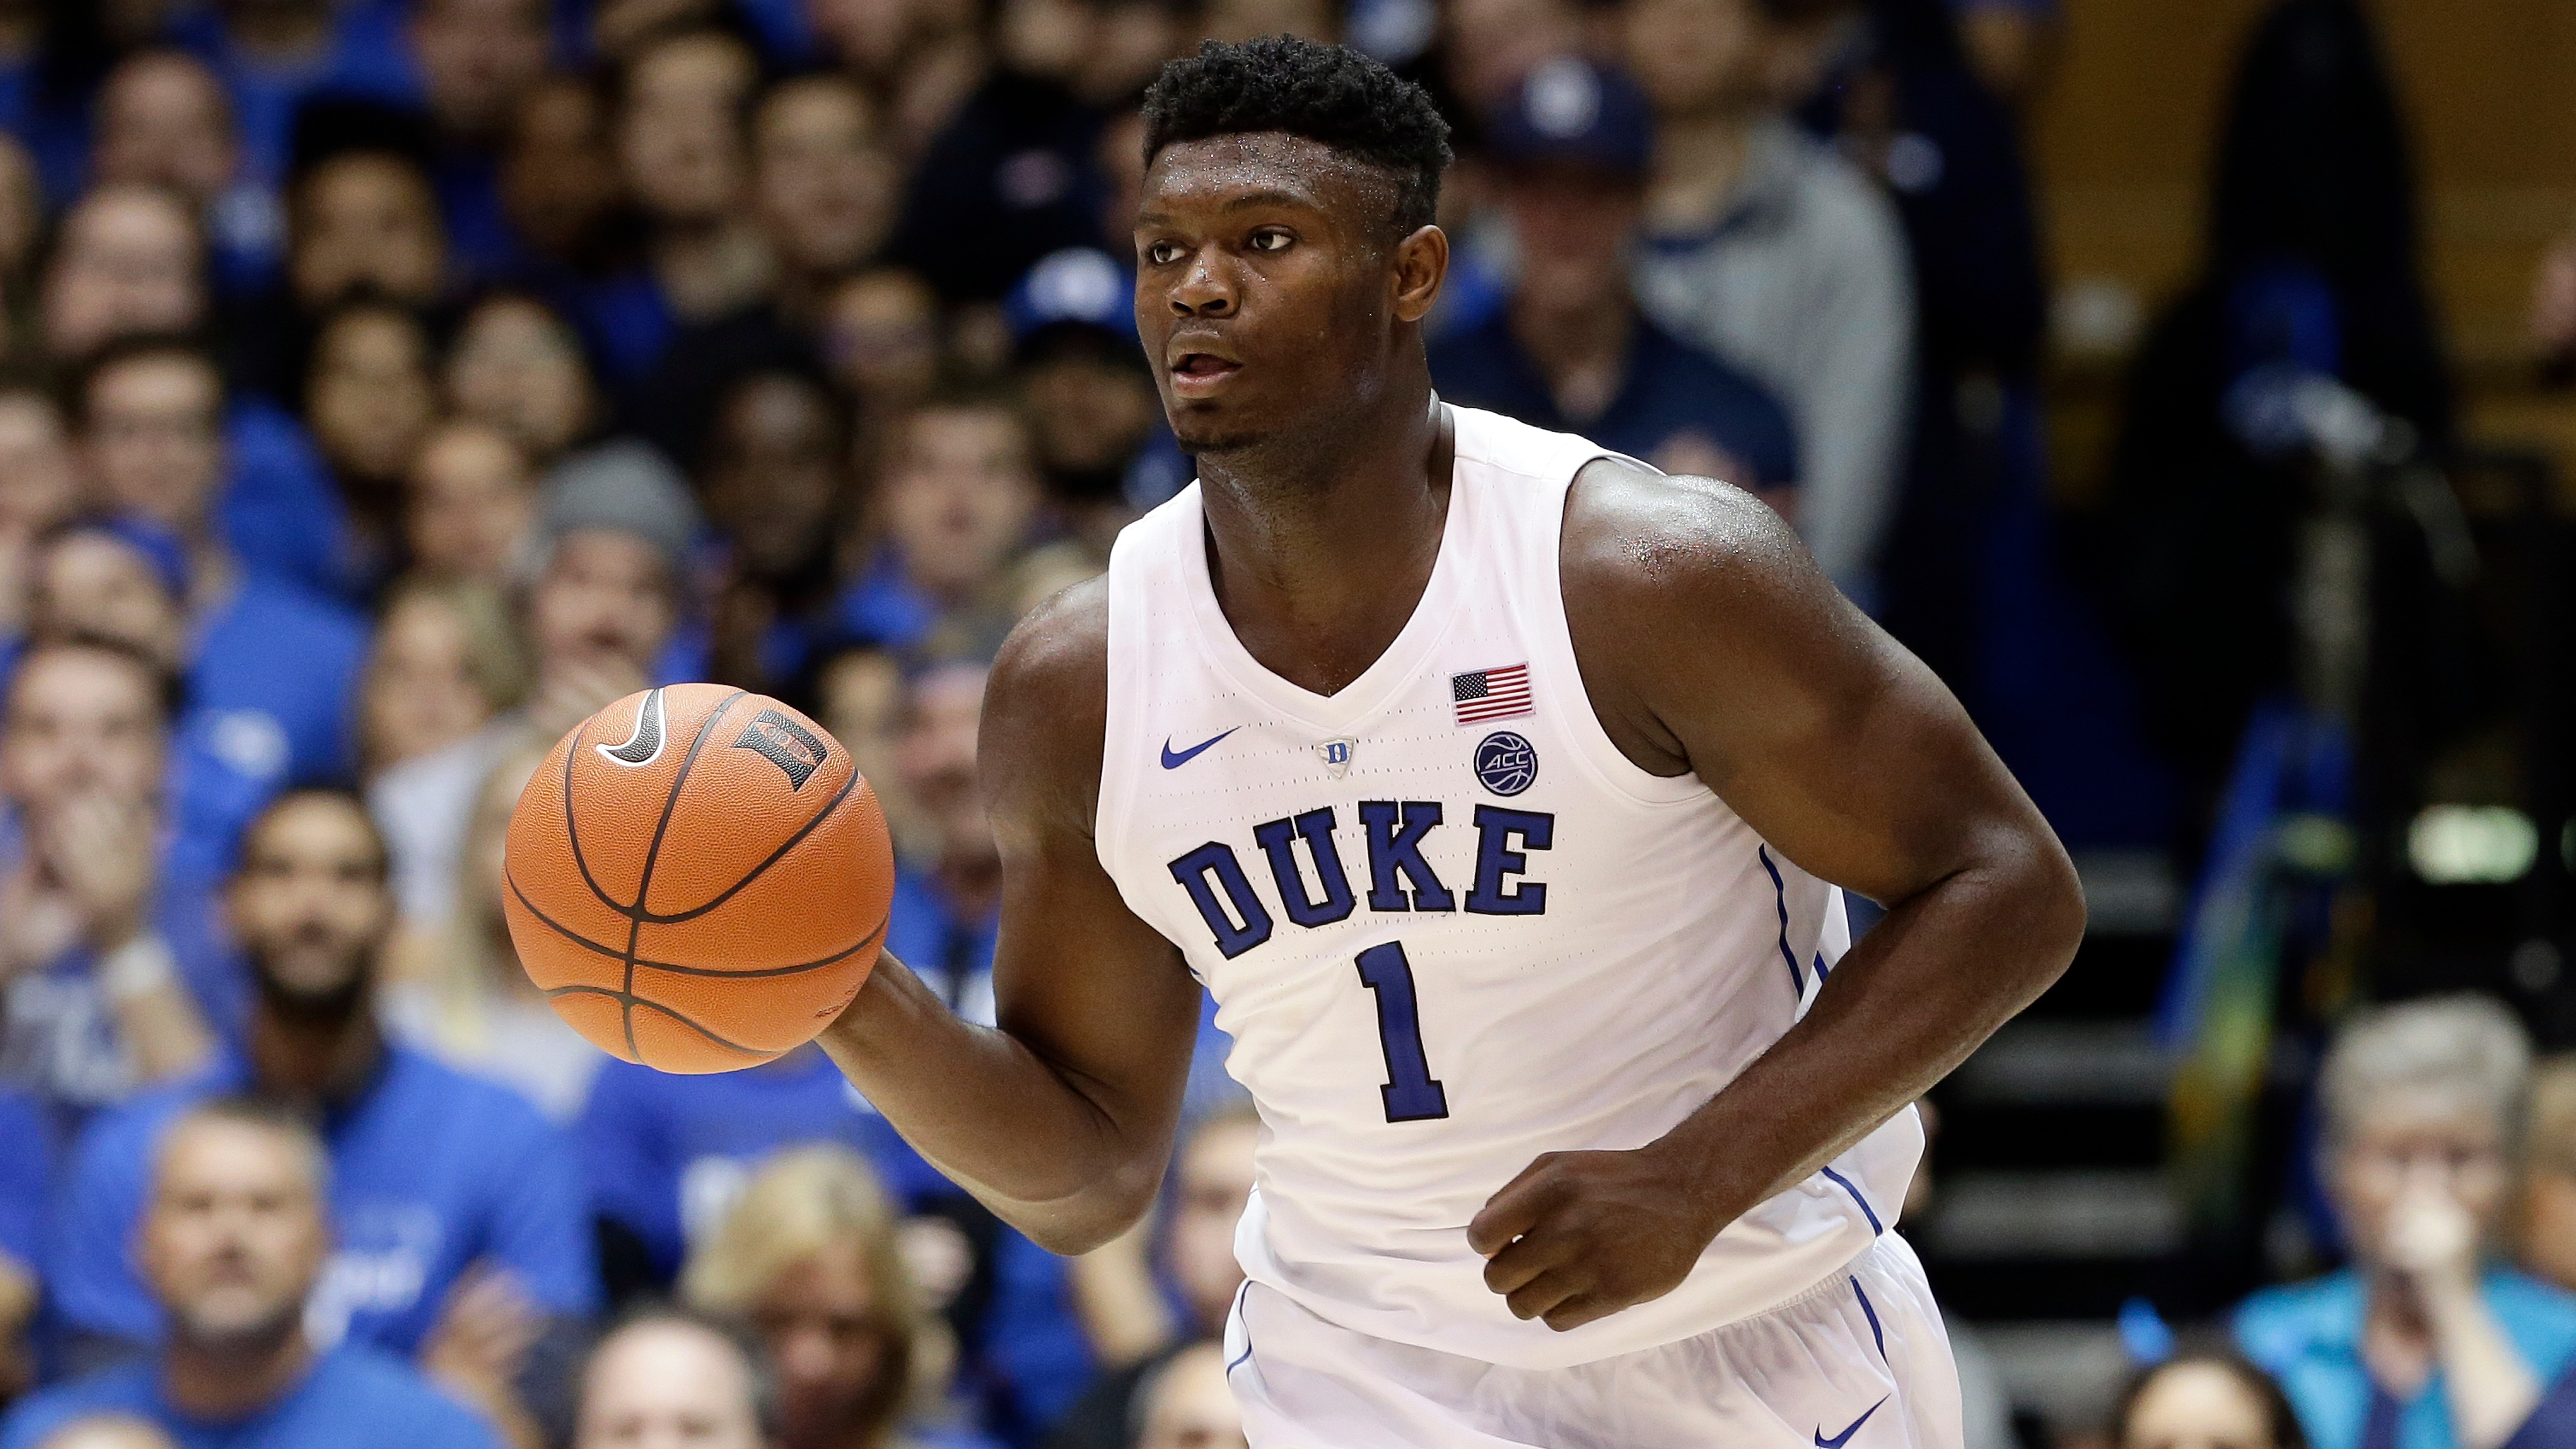 df3d6f7a2f27 Duke s Zion Williamson (1) dribbles against Army during the second half of  an NCAA college basketball game in Durham